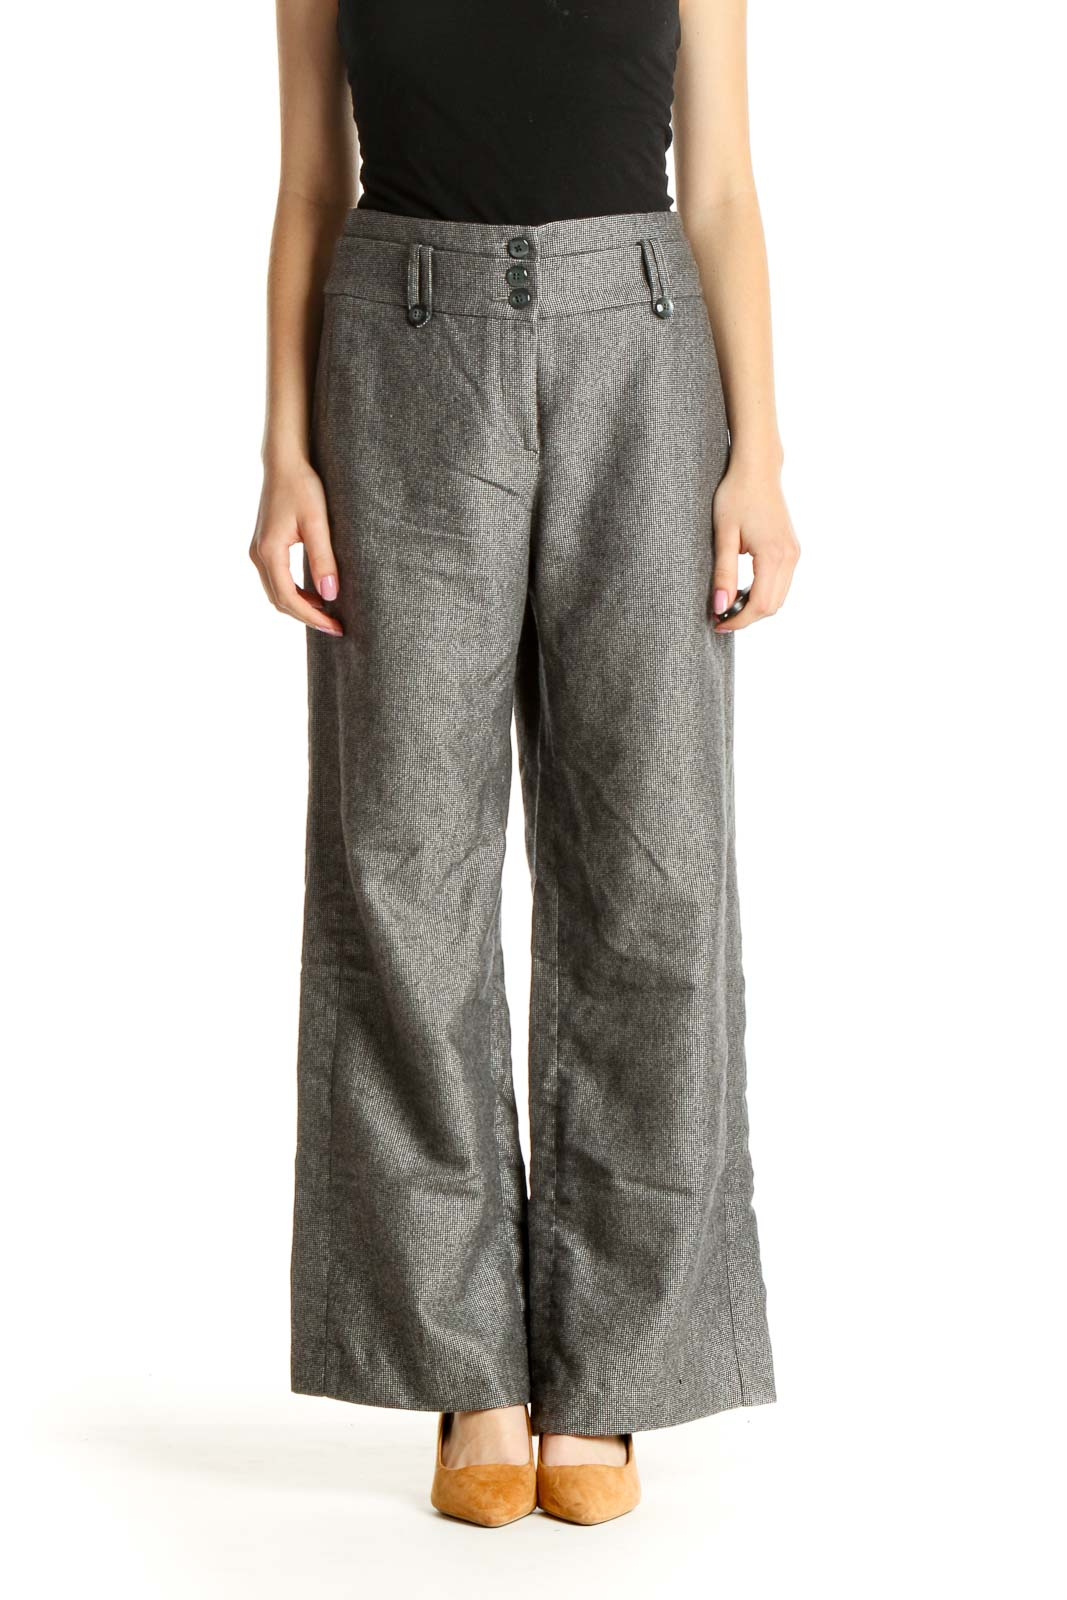 Gray All Day Wear Palazzo Pants Front